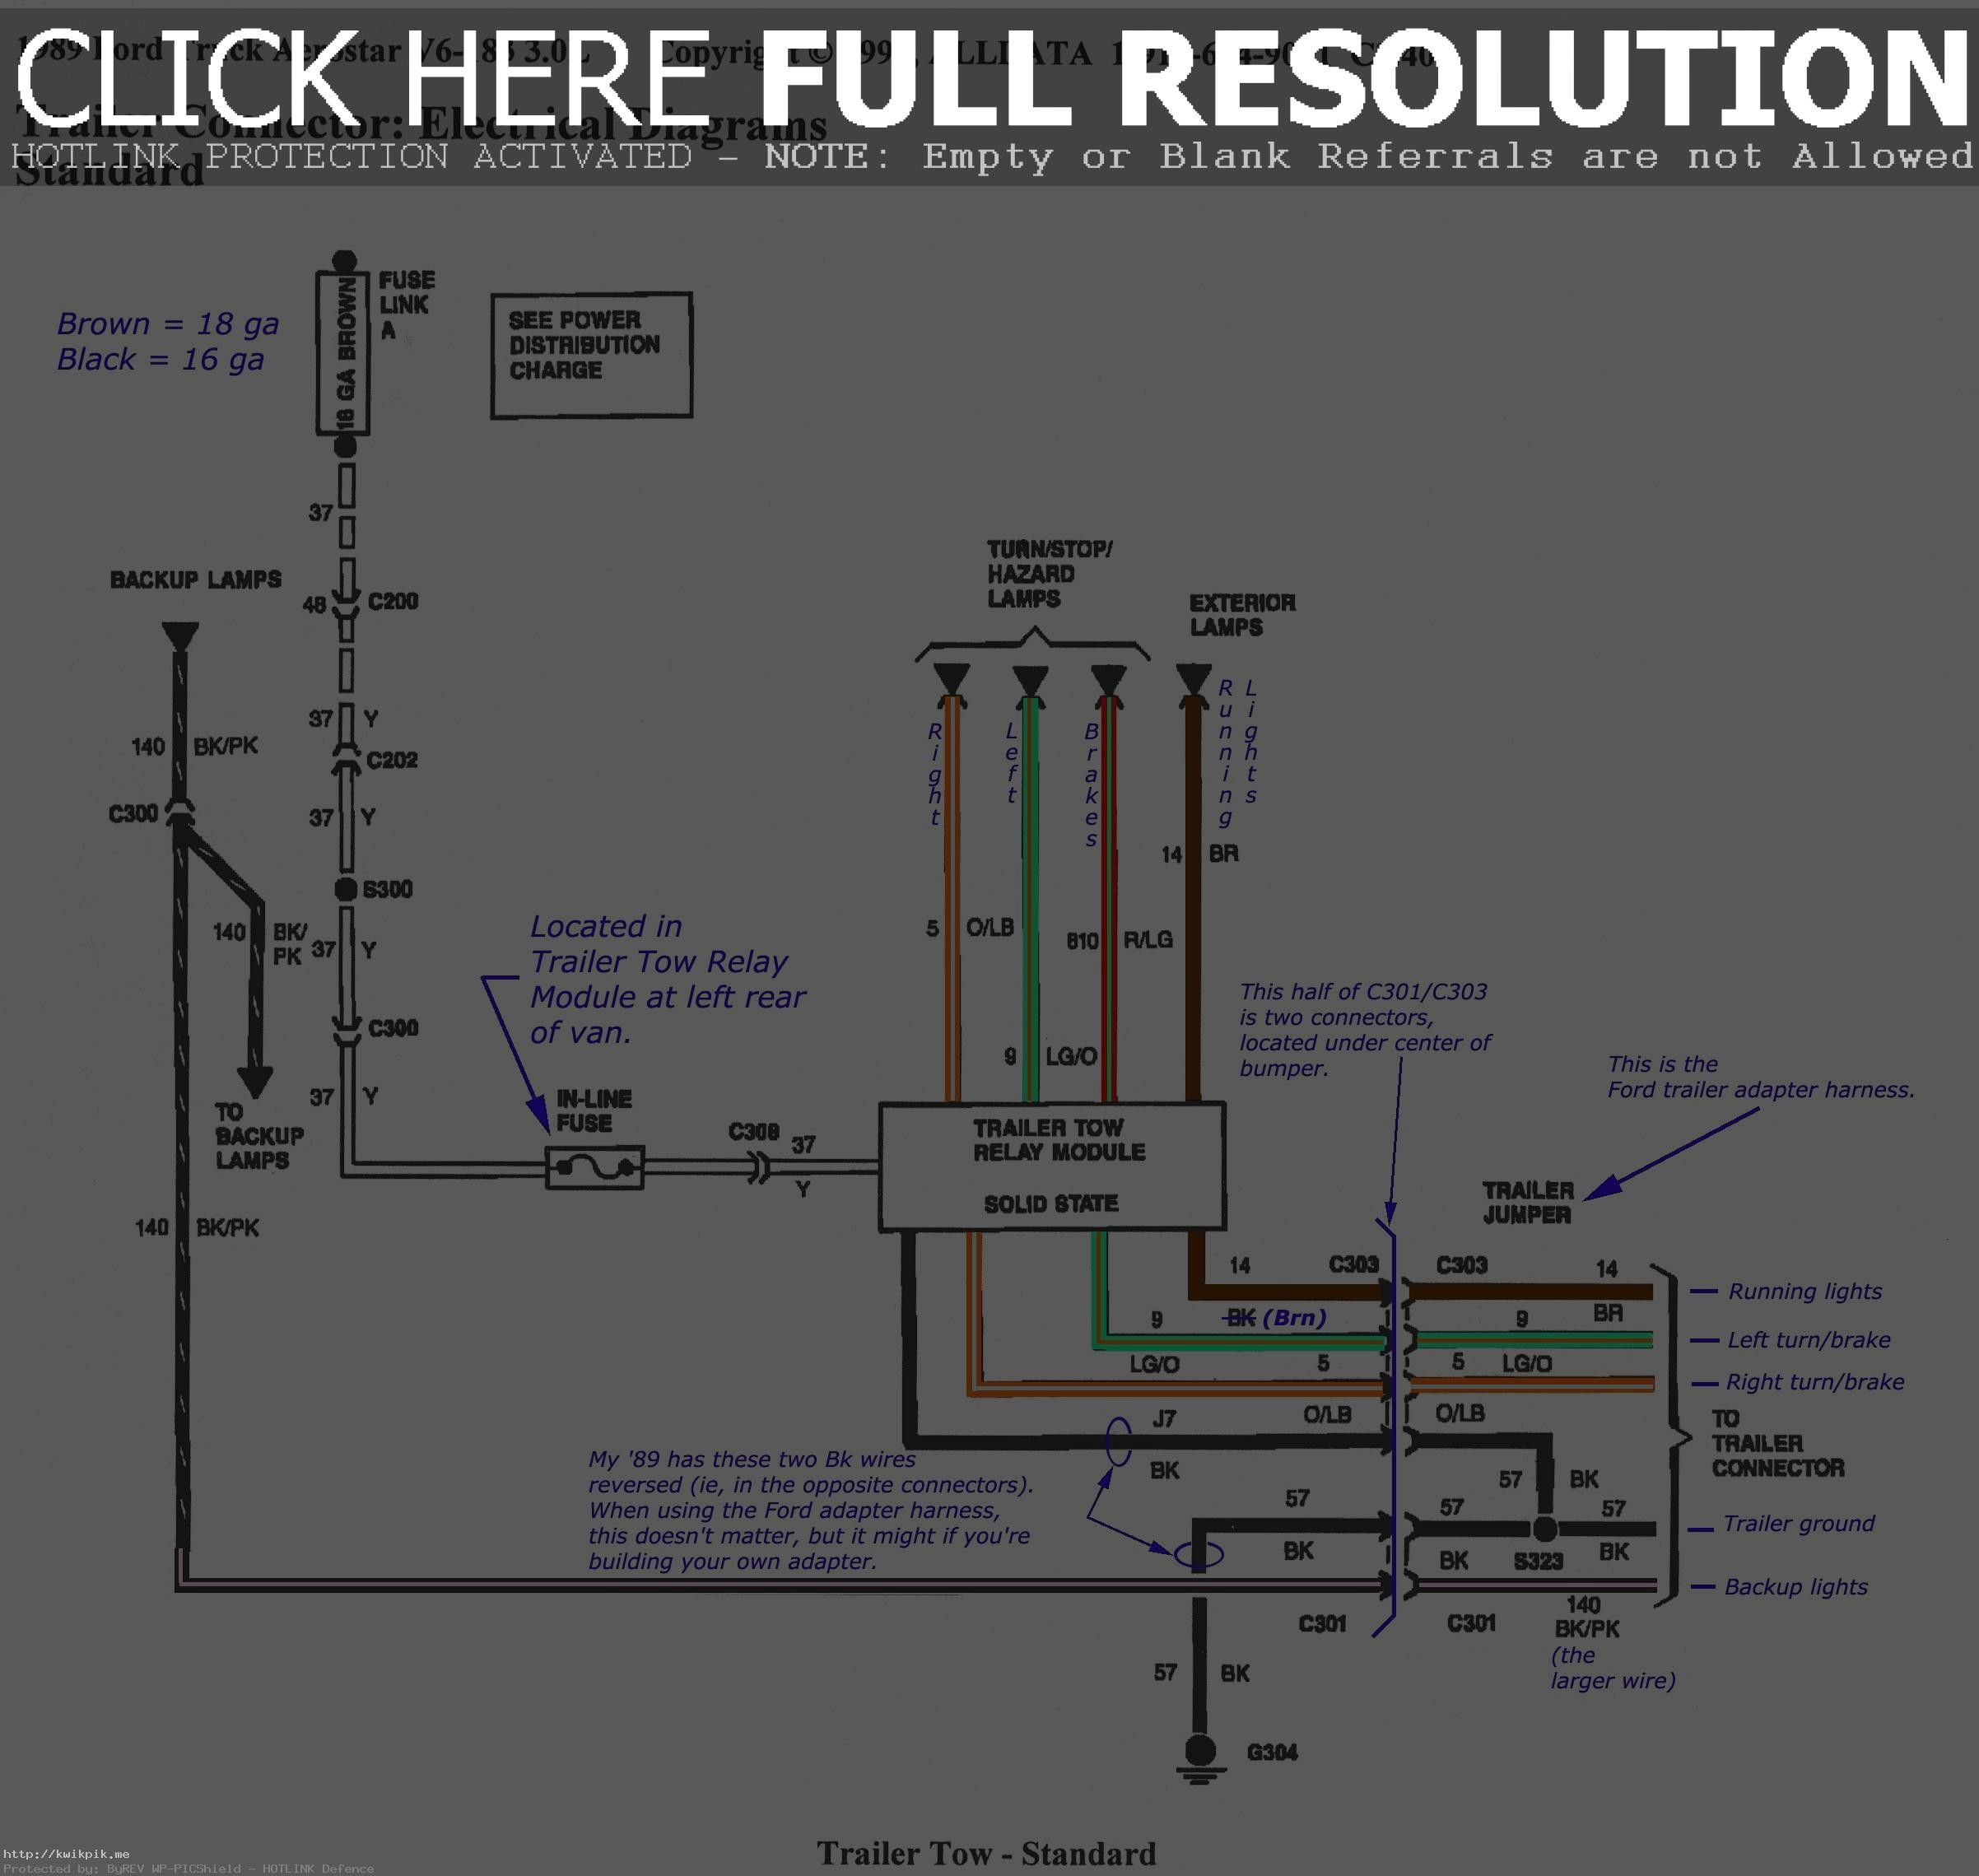 2012 Camry Backup Camera Wiring Schematic Wire Data Camry Backup Camera  Wiring Schematic